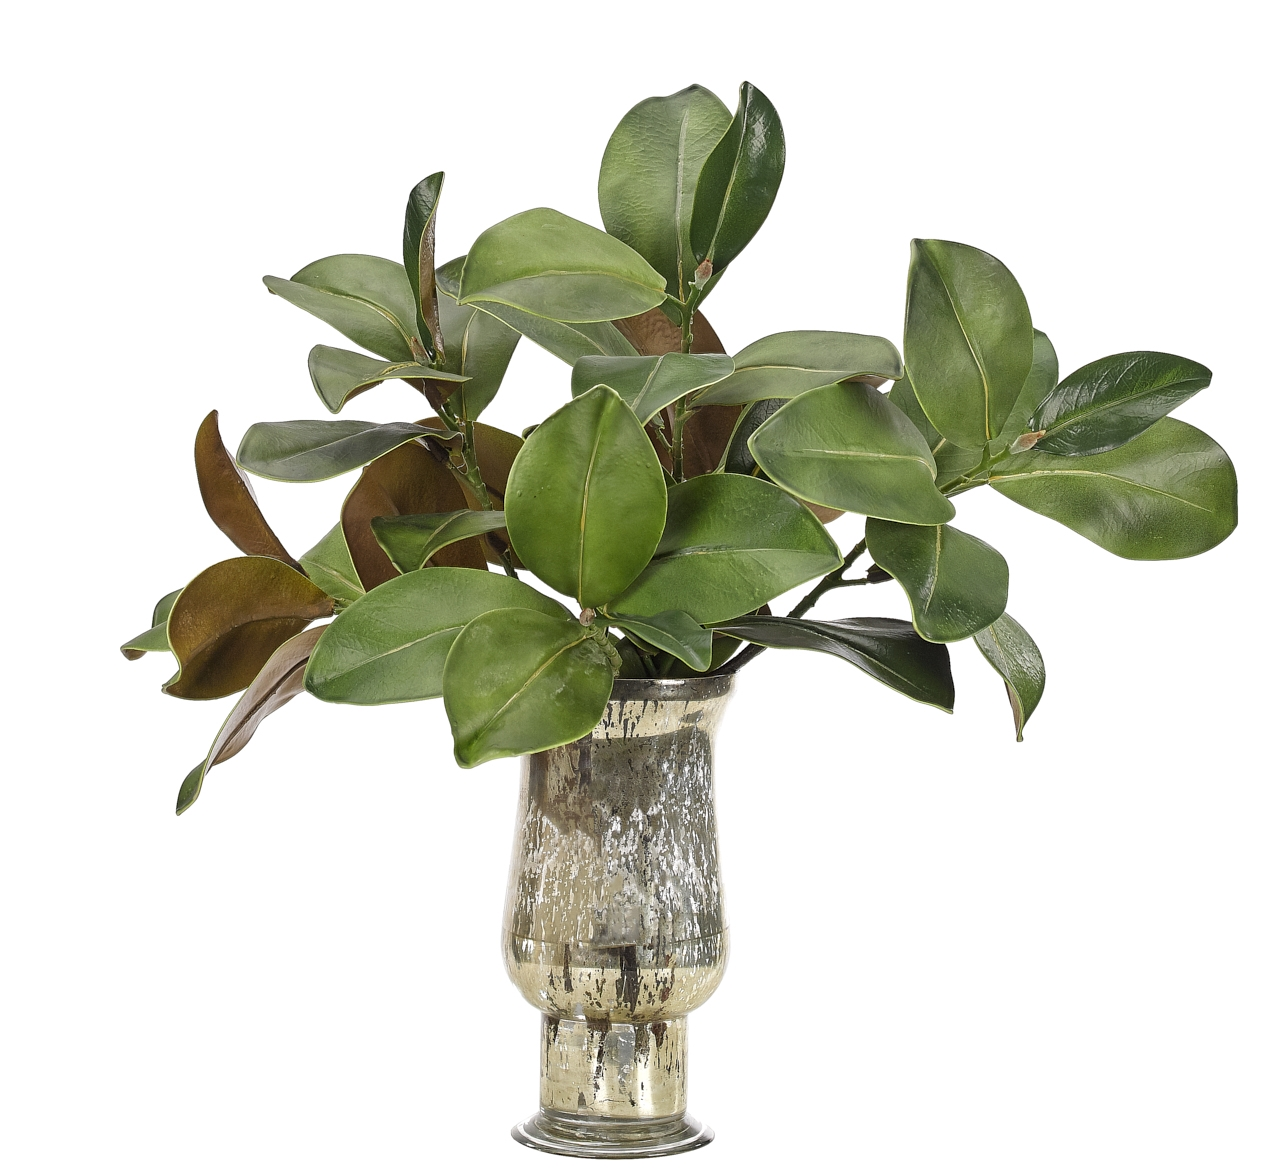 Magnolia Foliage, Glass Mercury Vase, 25wx21dx24h